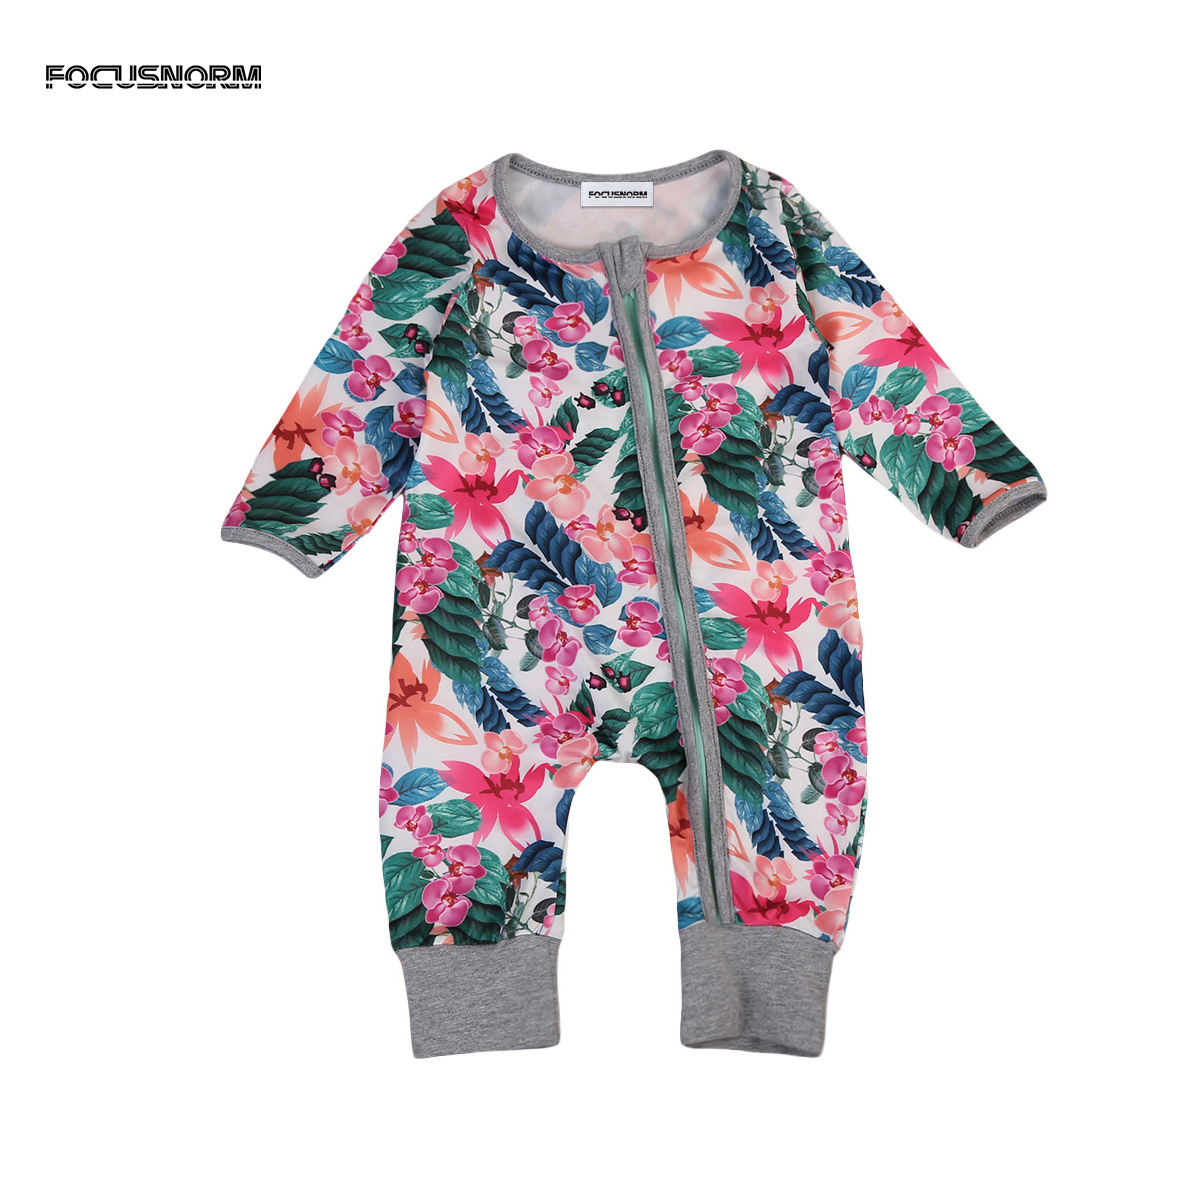 Autumn Newborn Baby Girls Floral Cotton Clothes Long Sleeves Romper Zipper One Piece Jumpsuit Outfits